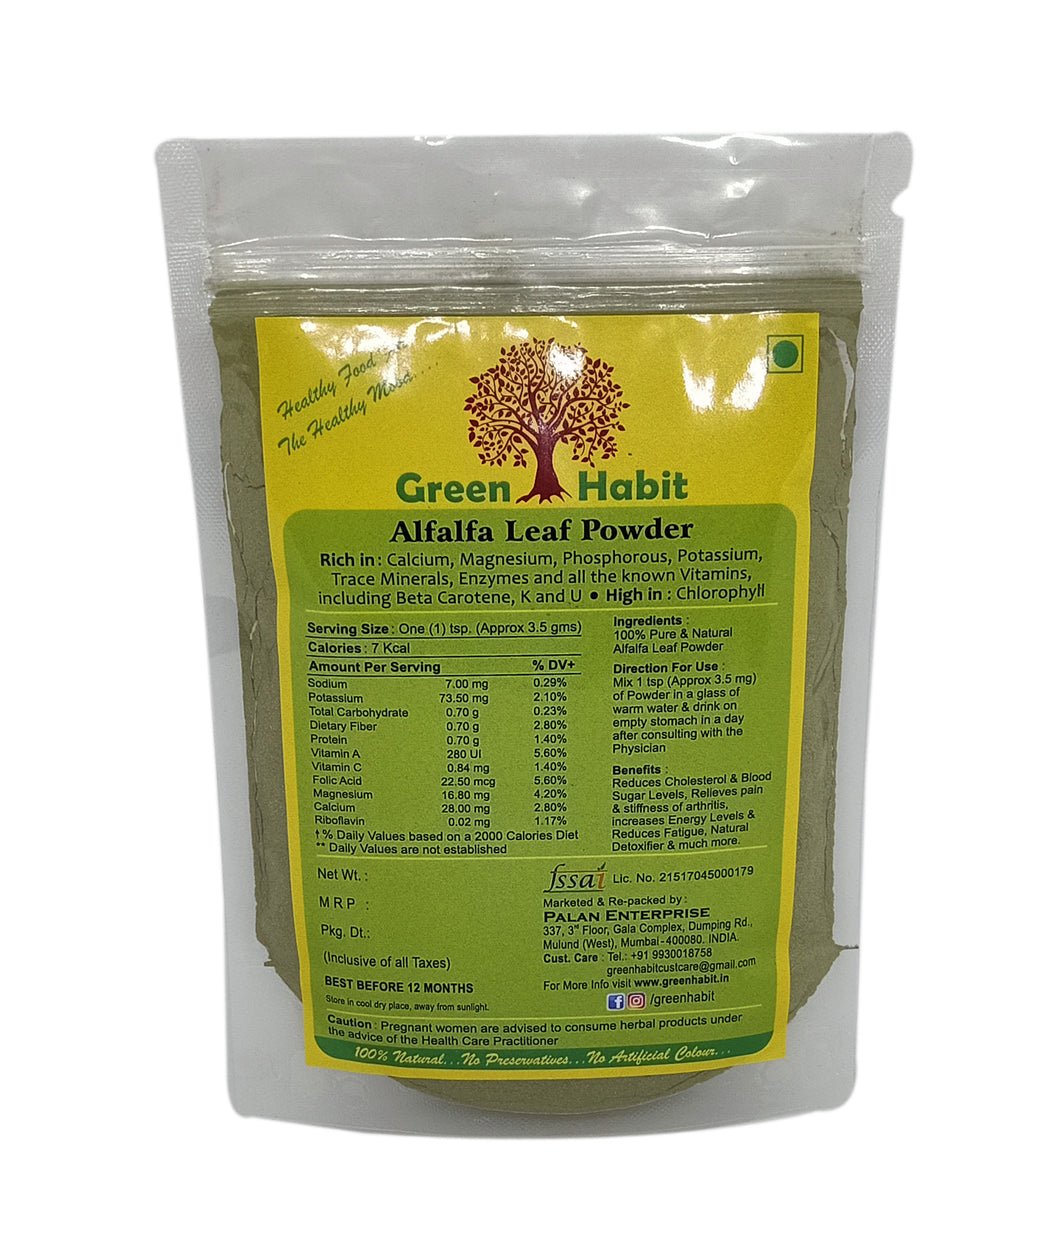 Green Habit Alfalfa Leaf Powder Organic Premium Quality, [Father of All Foods, High in Chlorophyll]